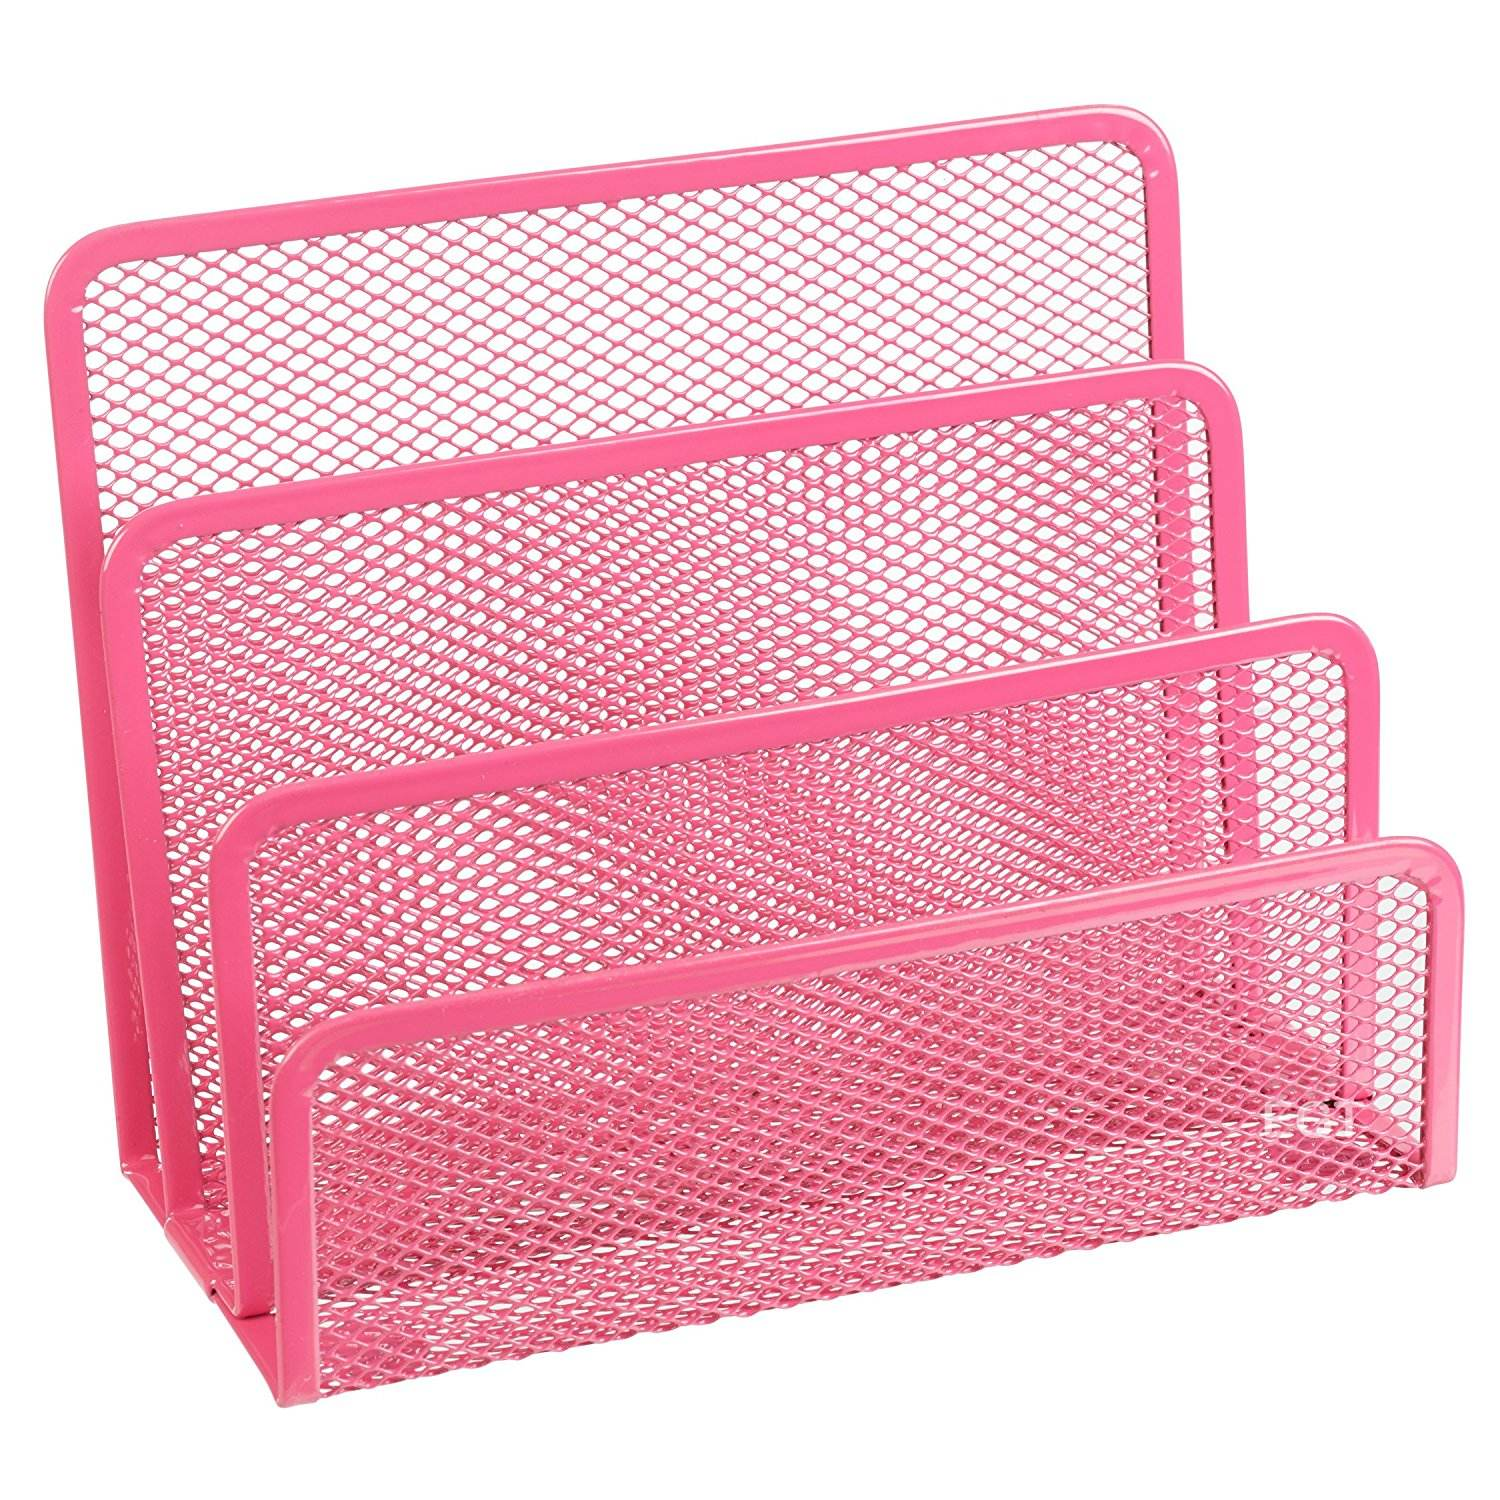 Wideny international design desktop organizer holder office school home supply wire metal mesh 3 slots letter holder